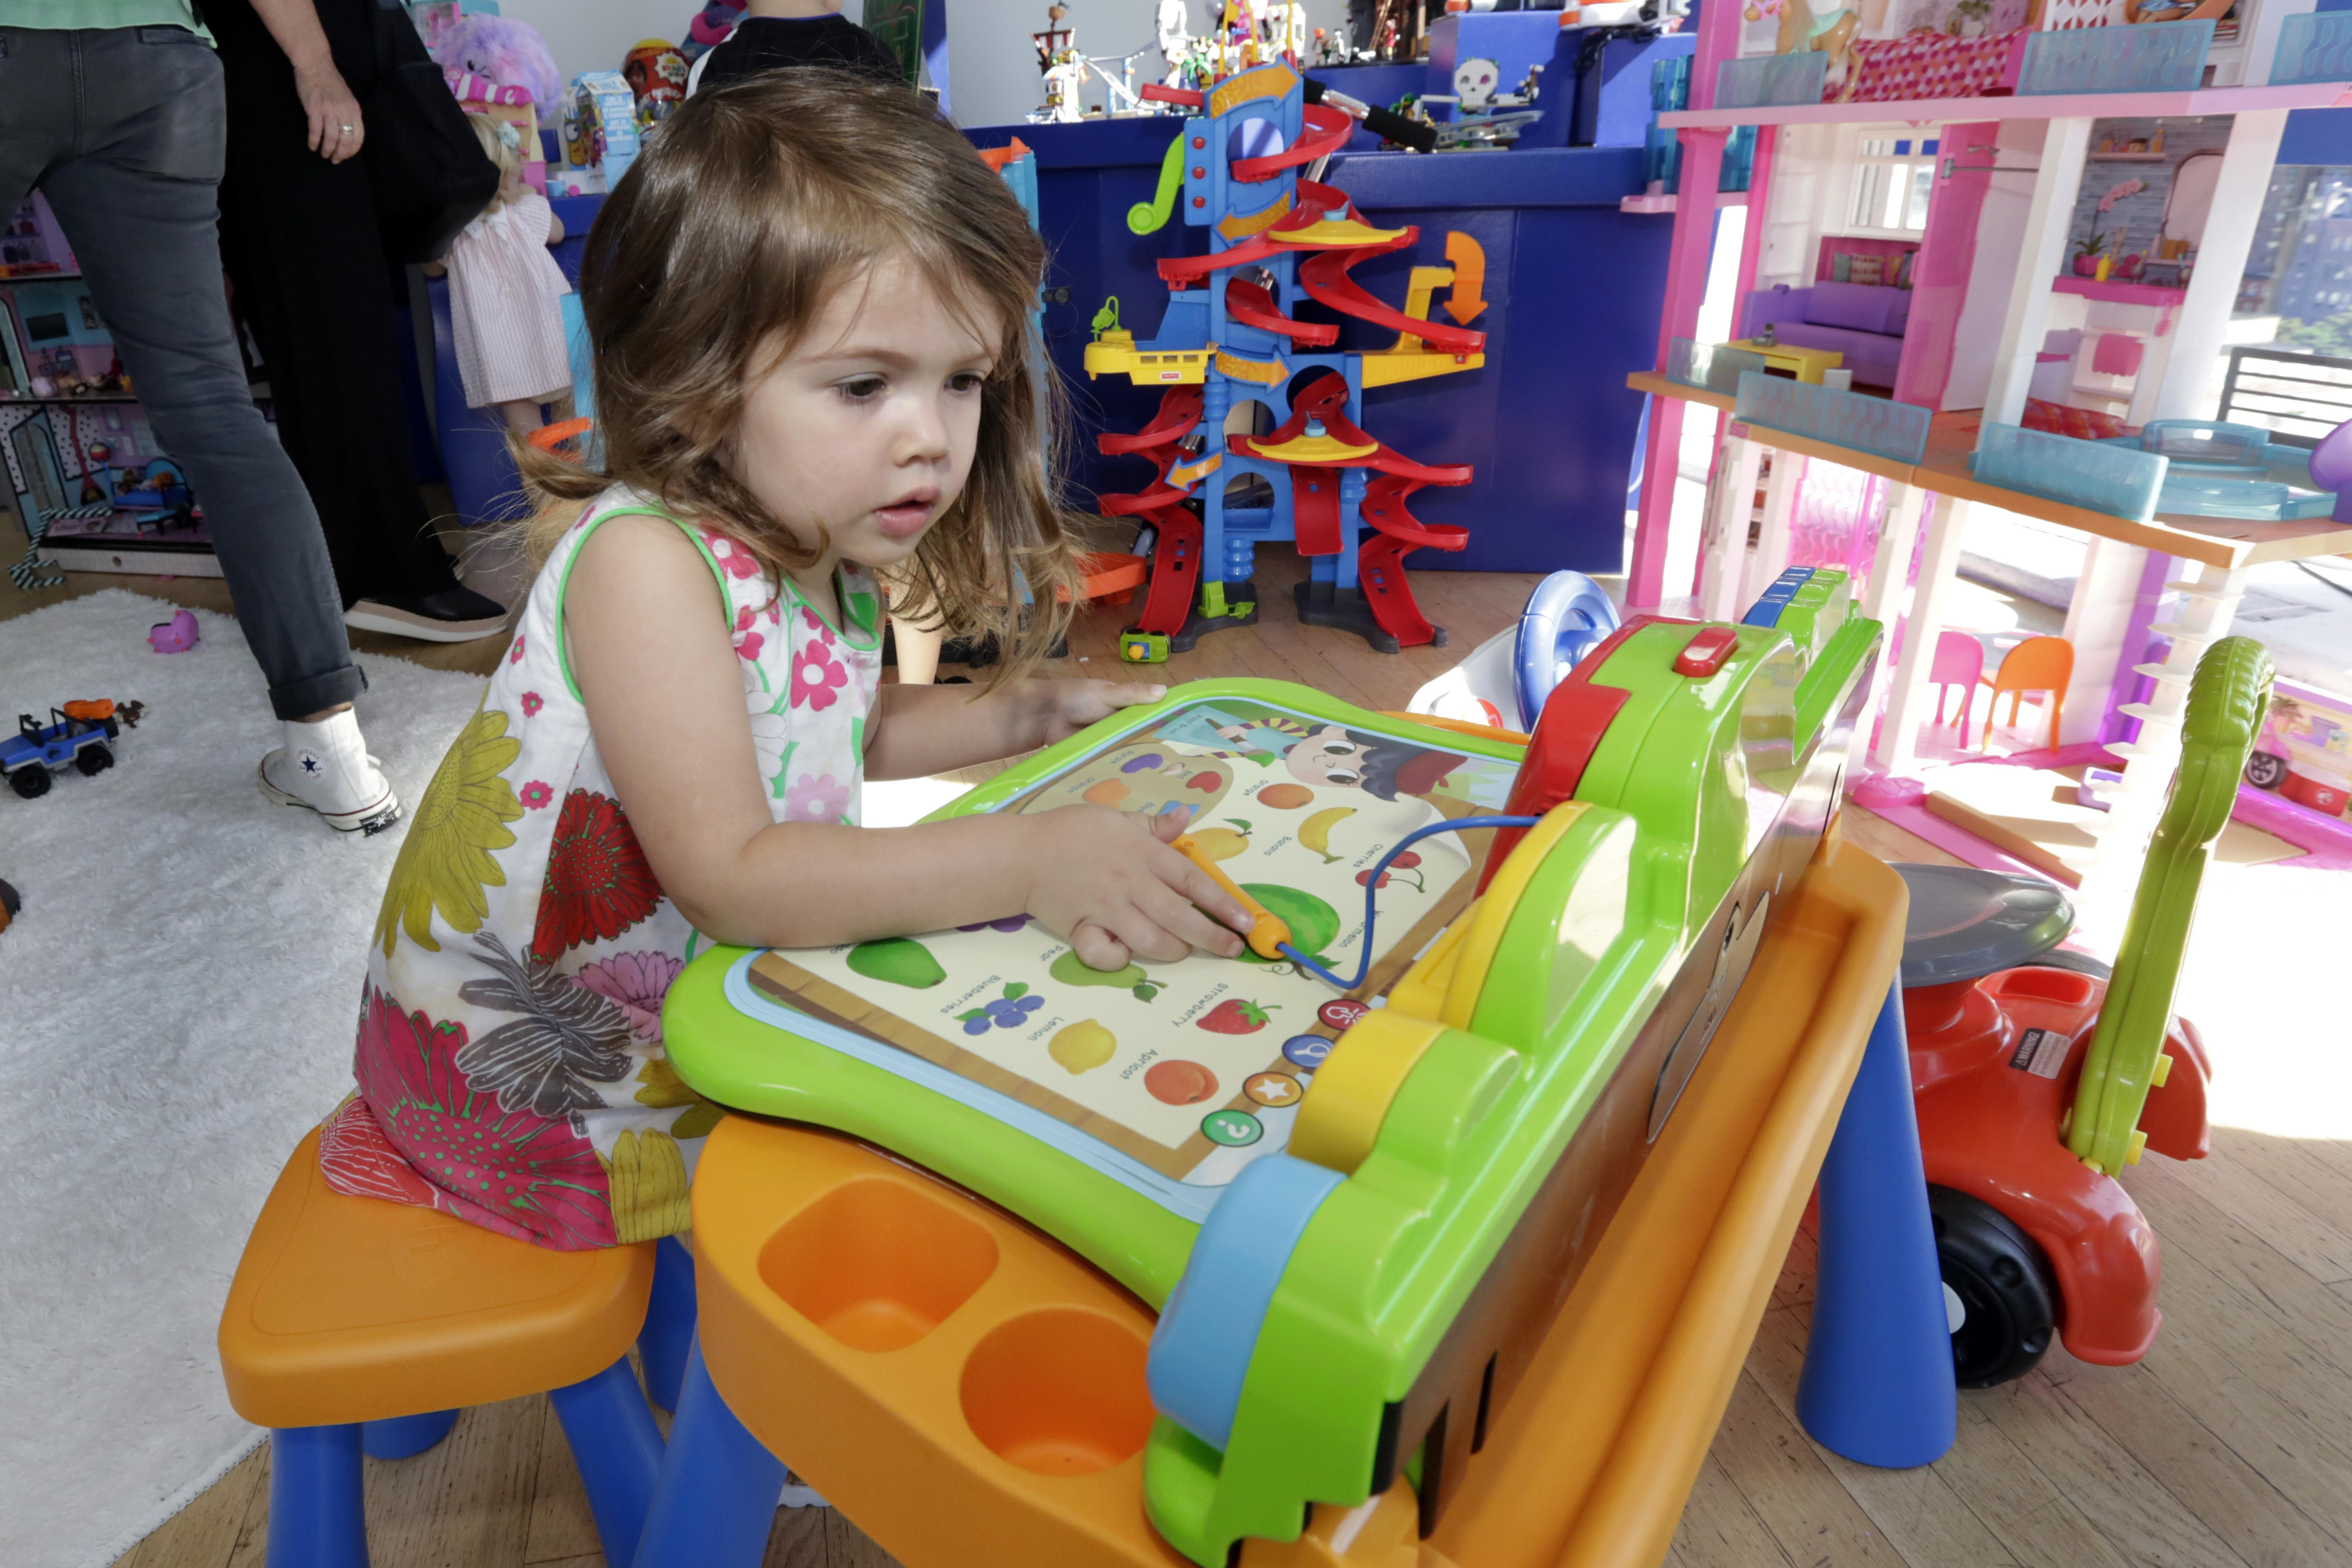 Retailers Up Their Game After Toys R Us Closures The Spokesman Review